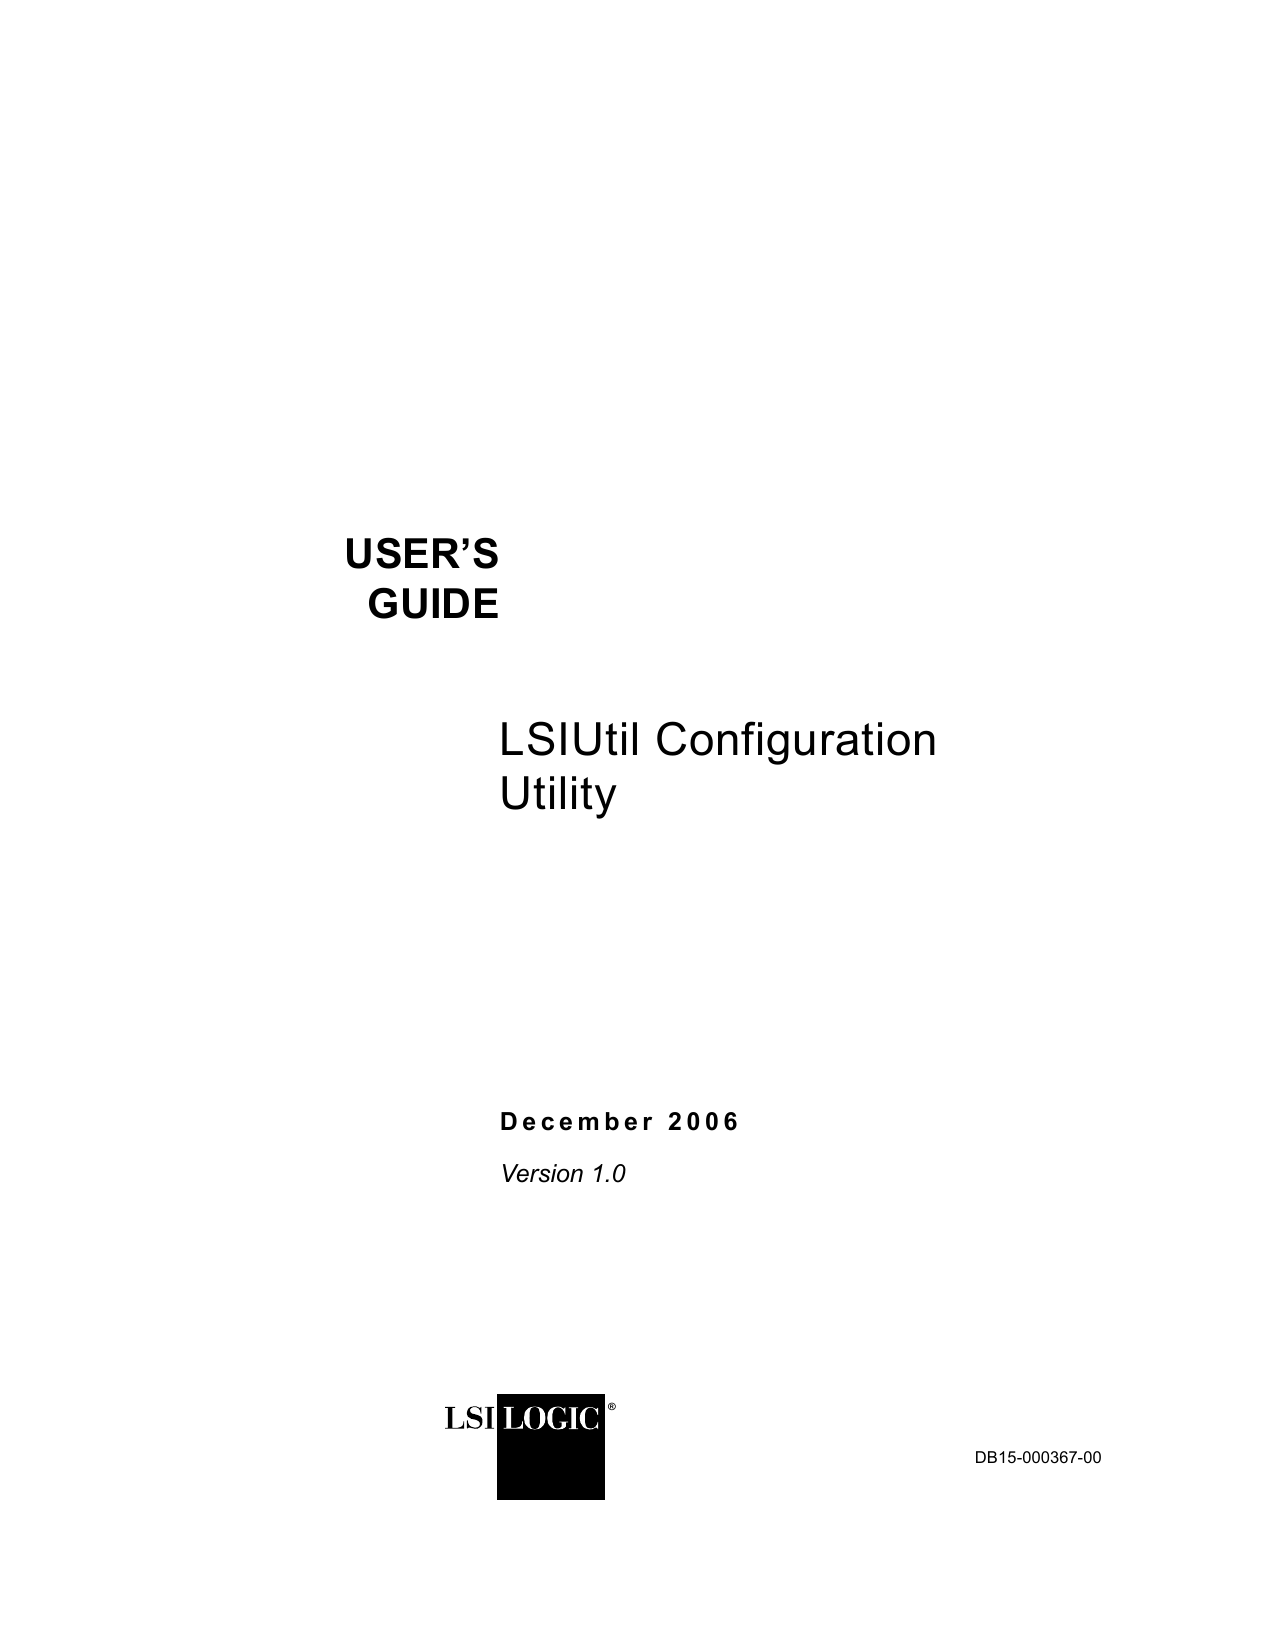 LSIUtil Configuration Utility User`s Guide - Thomas